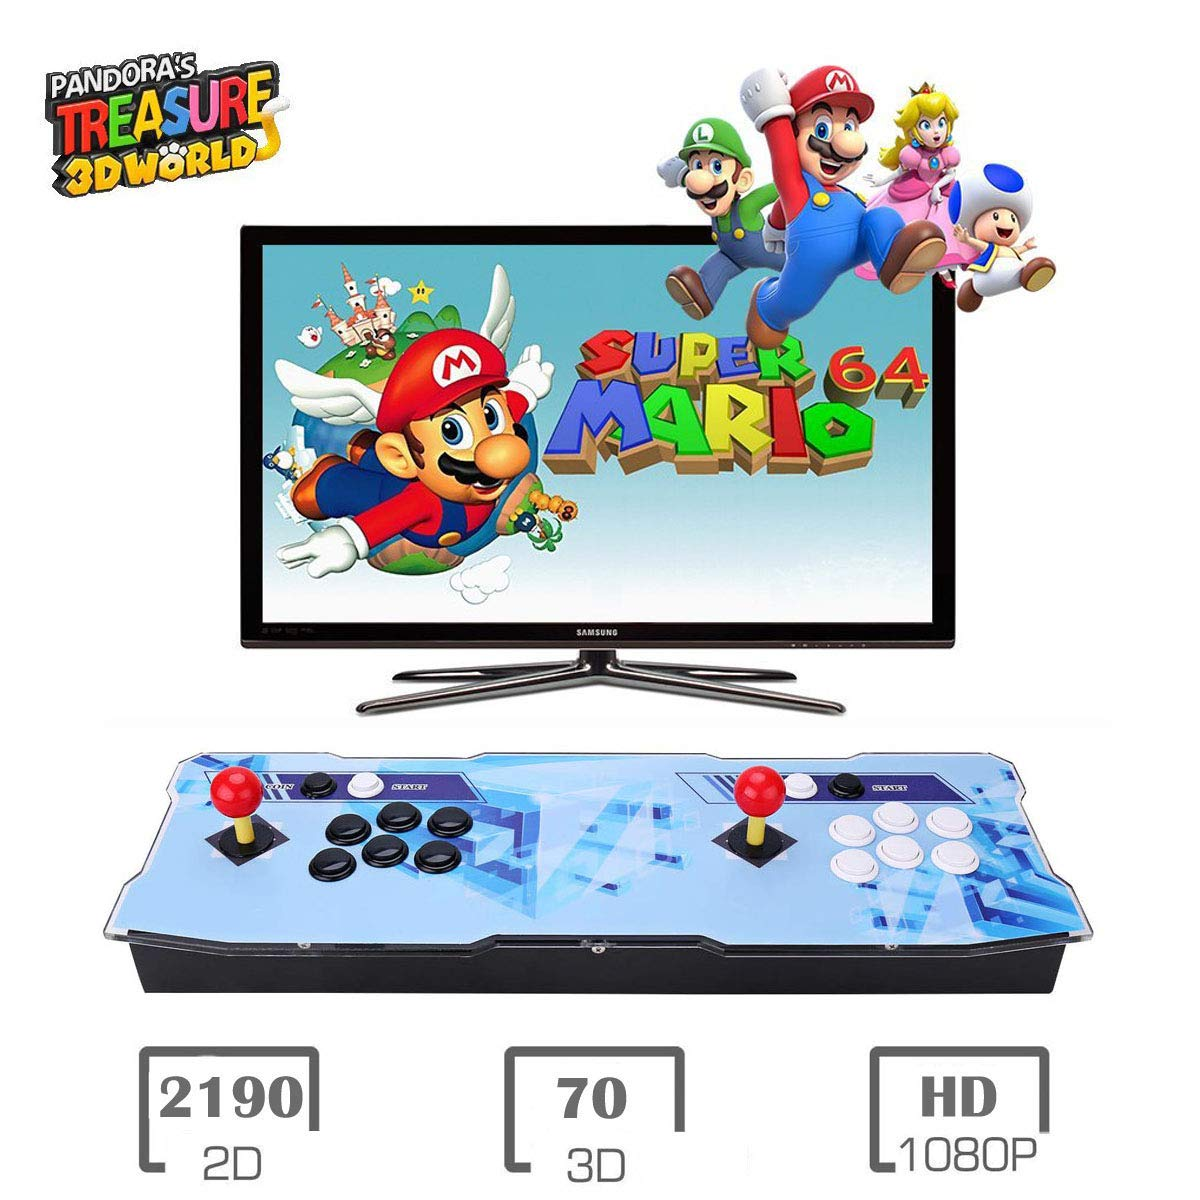 Pandora Treasure 3D 2260 Retro Home Arcade Game Console | Support 3D Games | Add More Games | Support 4 Players | Full HD (1920x1080) Video | 2 Player Game Controls | HDMI/VGA/USB/AUX Audio Output by HAAMIIQII (Image #1)